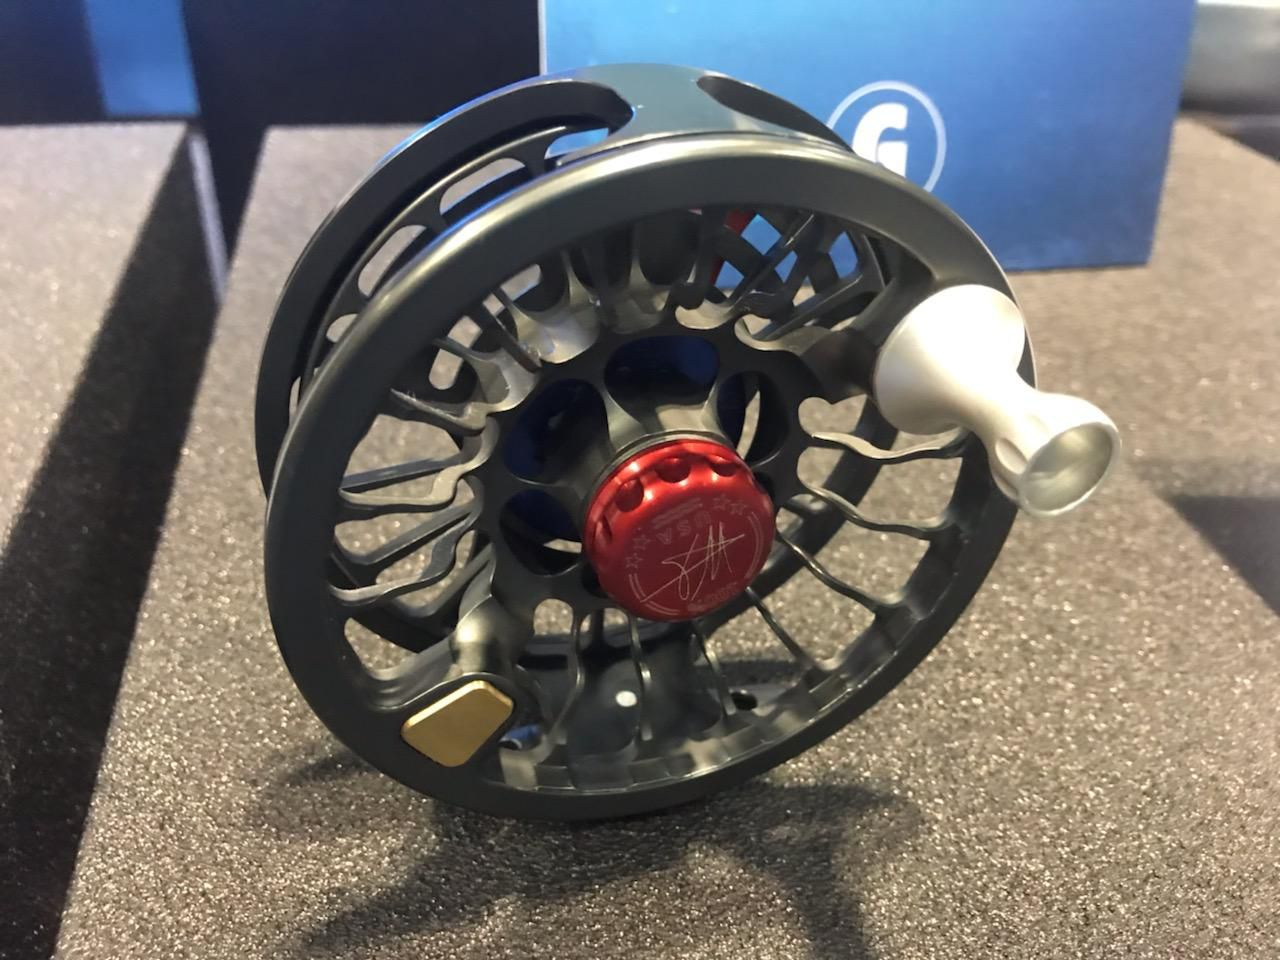 "SEiGLER's Lever Drag Fly Reel allows for ultimate control of your drag pressure. The dovetail foot creates the lowest height, strongest connection to rod. The 4"" diameter reel weighs just 7.2 oz and produces 18#'s of drag."